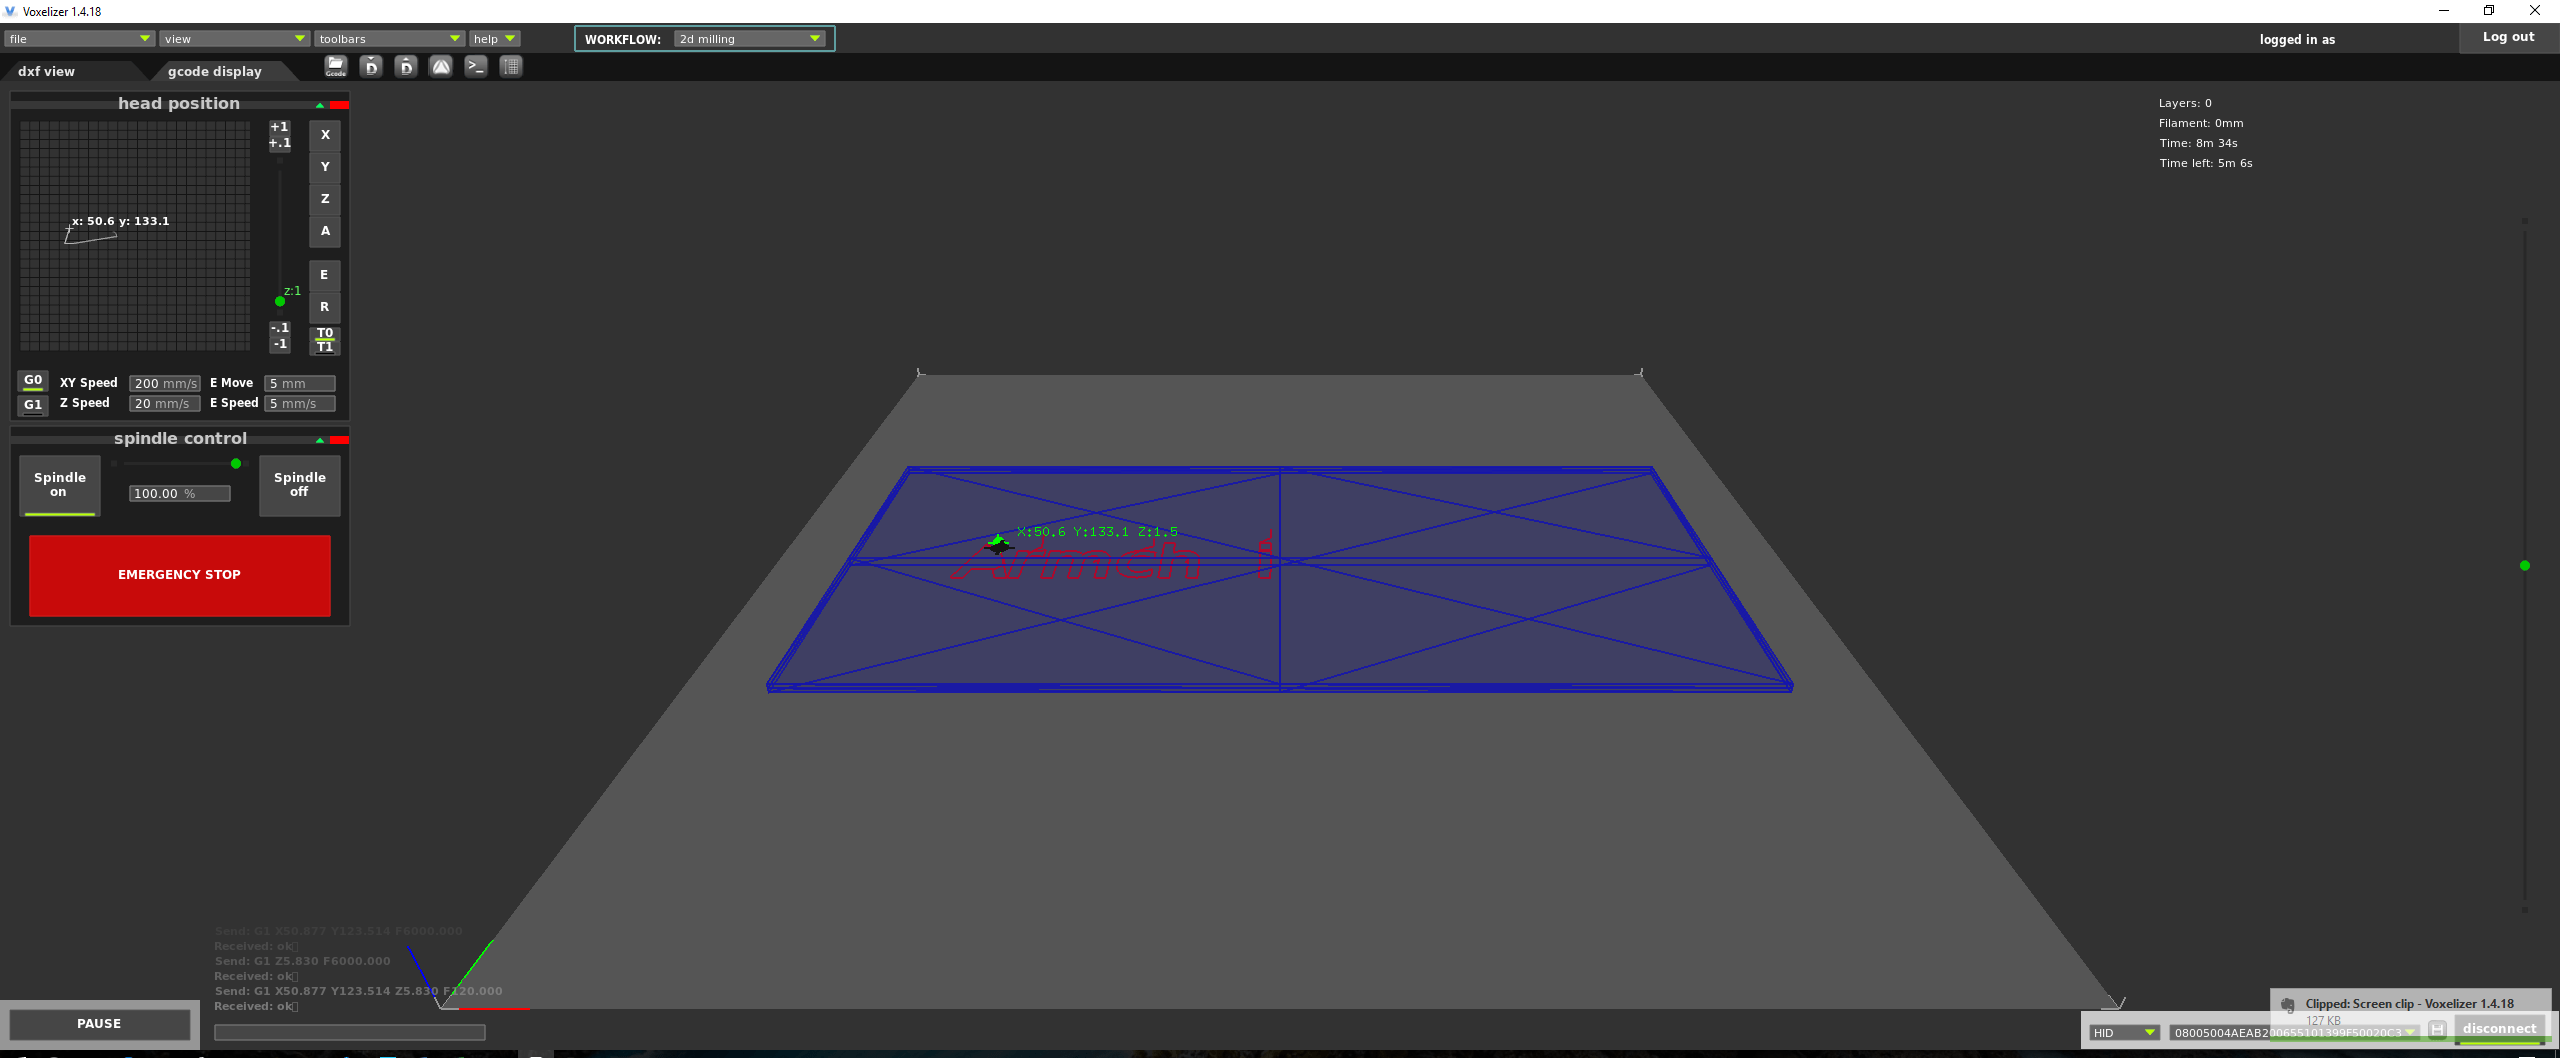 """My gcode display in Voxelizer, with the print in progress. Don't forget to set """"Spindle On"""" before you send the print job!"""